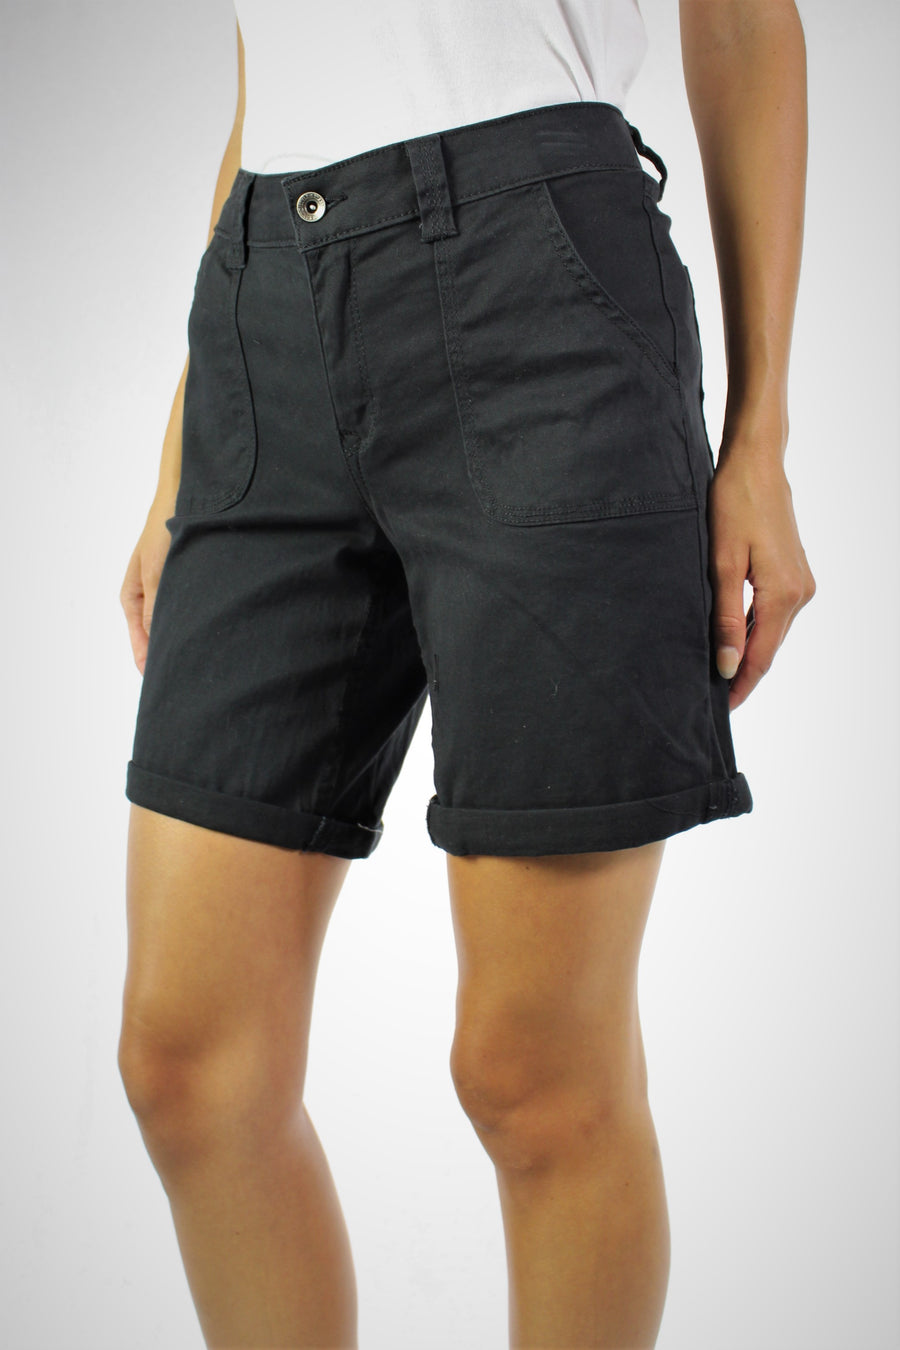 Ladies Black Cord Shorts Sizes 8-10-12-14-16 Brand New